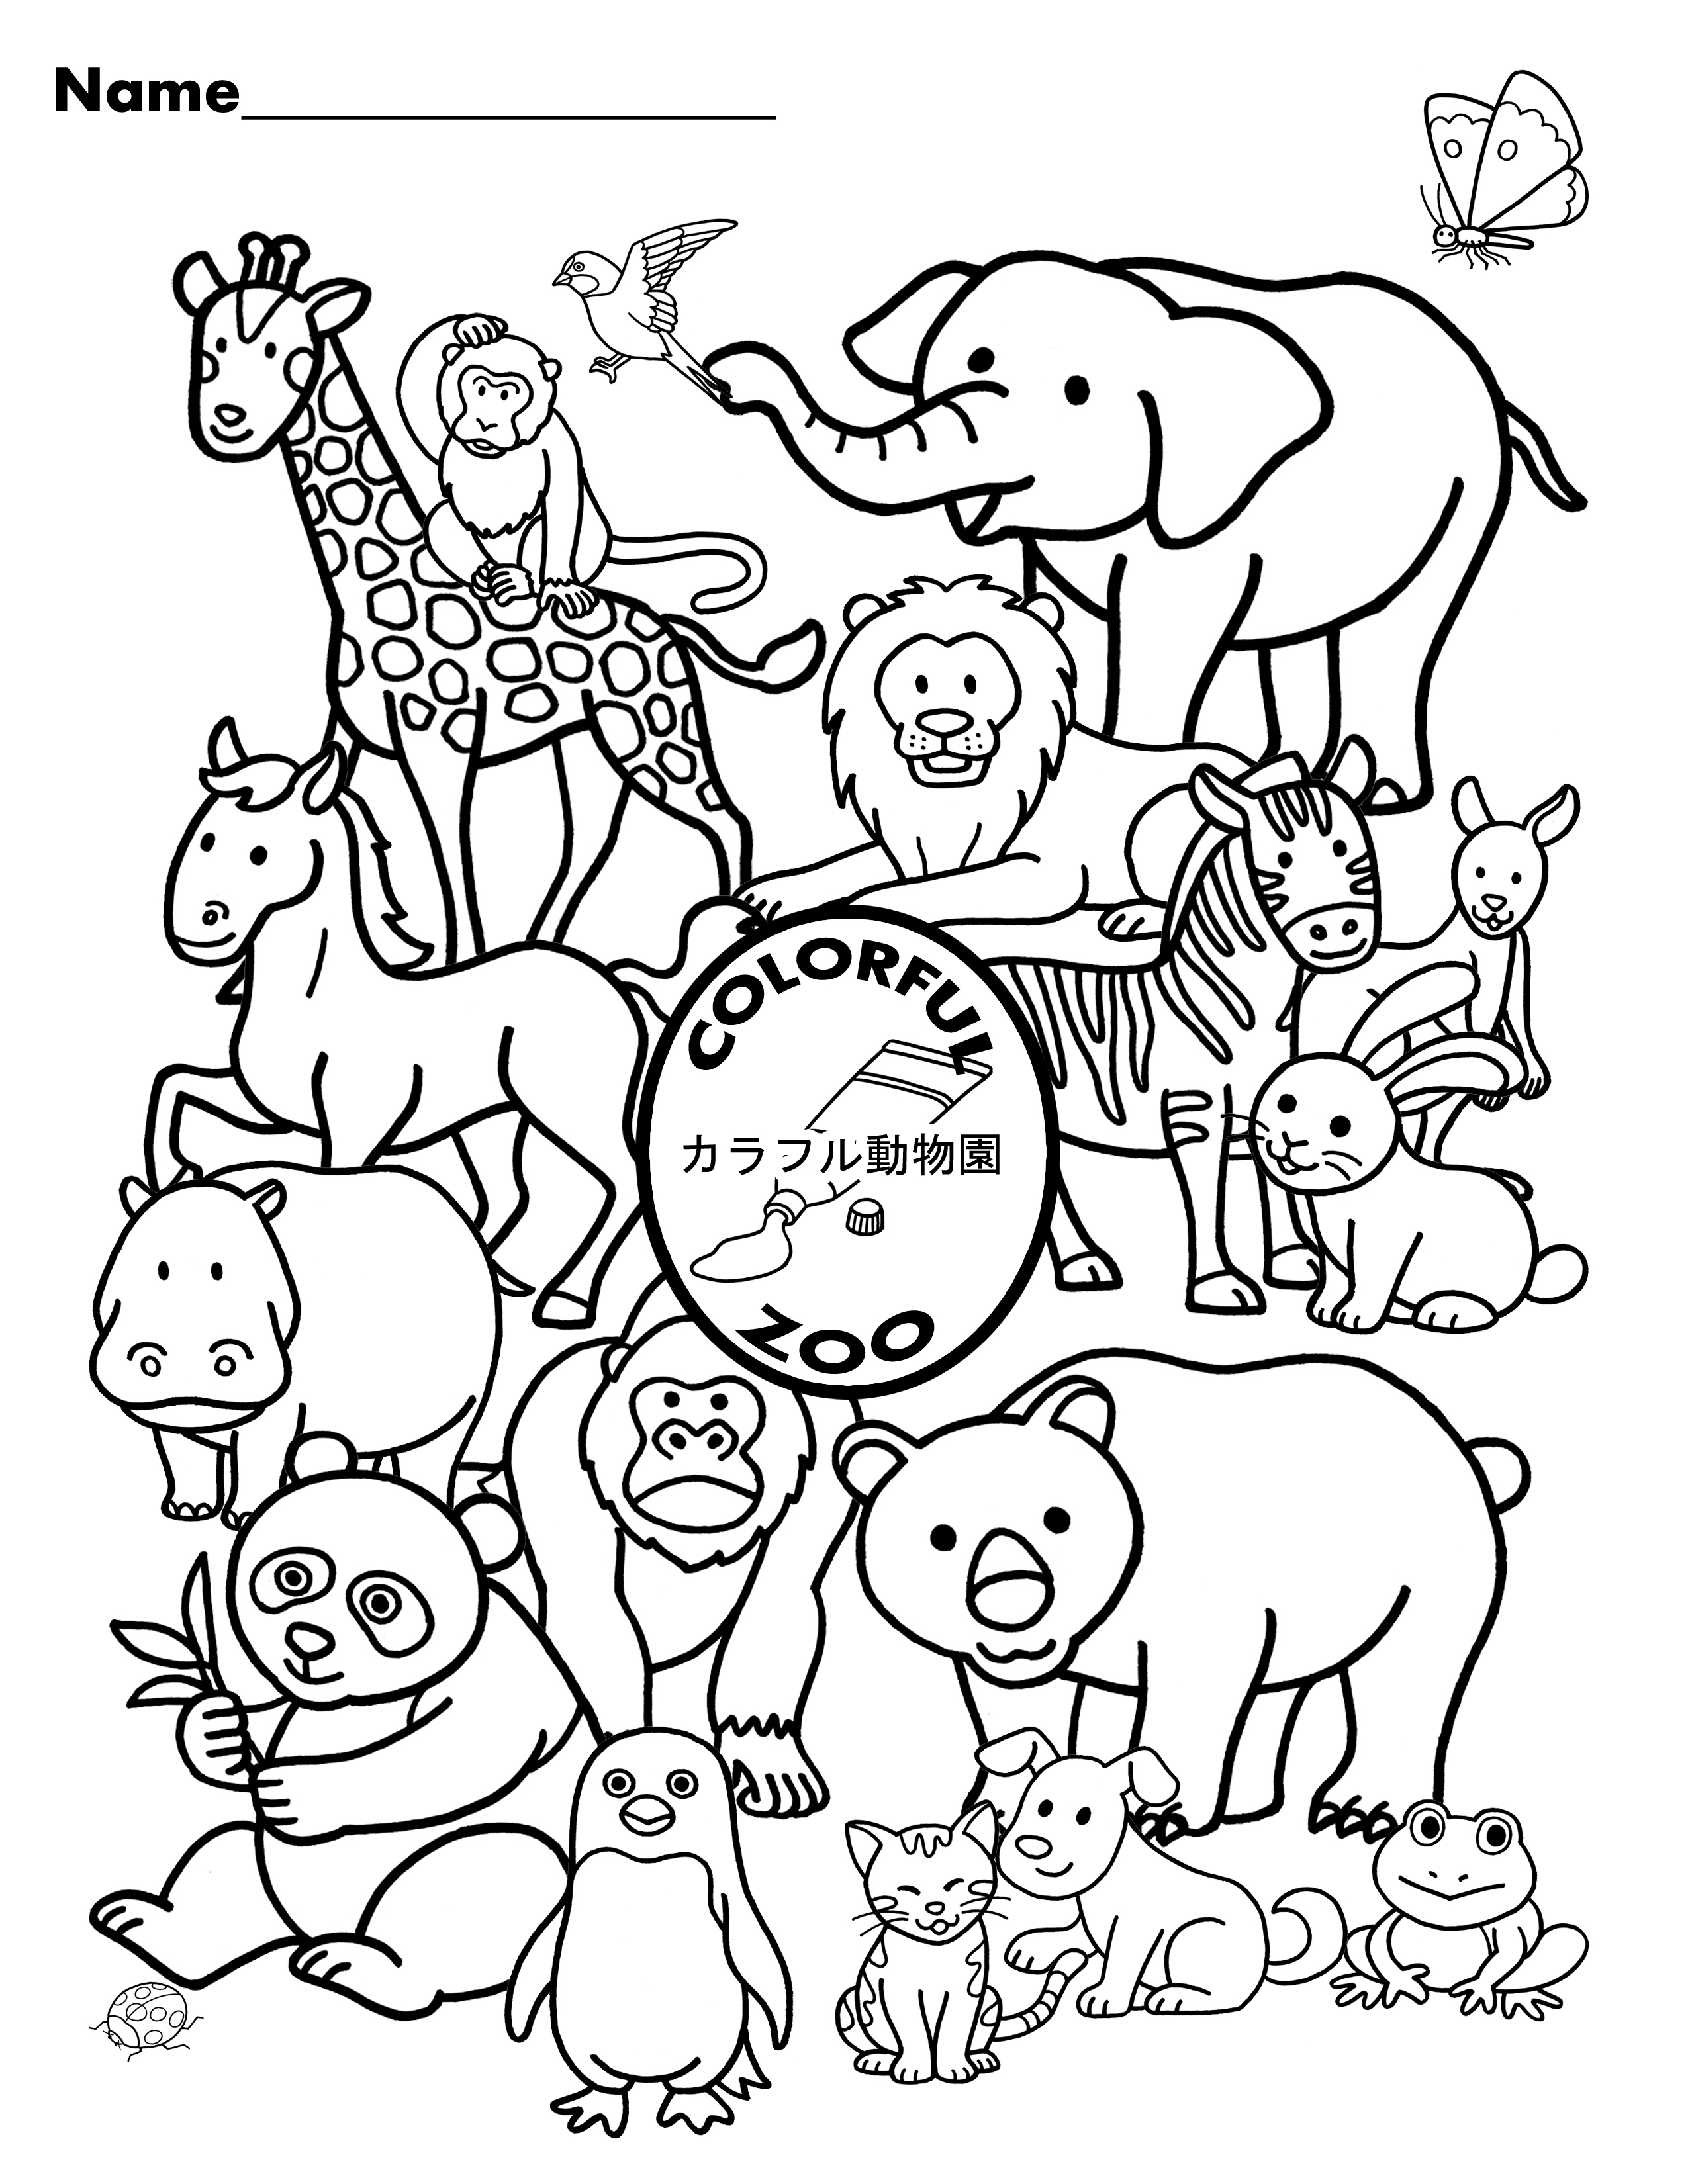 zoo coloring picture free printable zoo coloring pages for kids zoo coloring picture